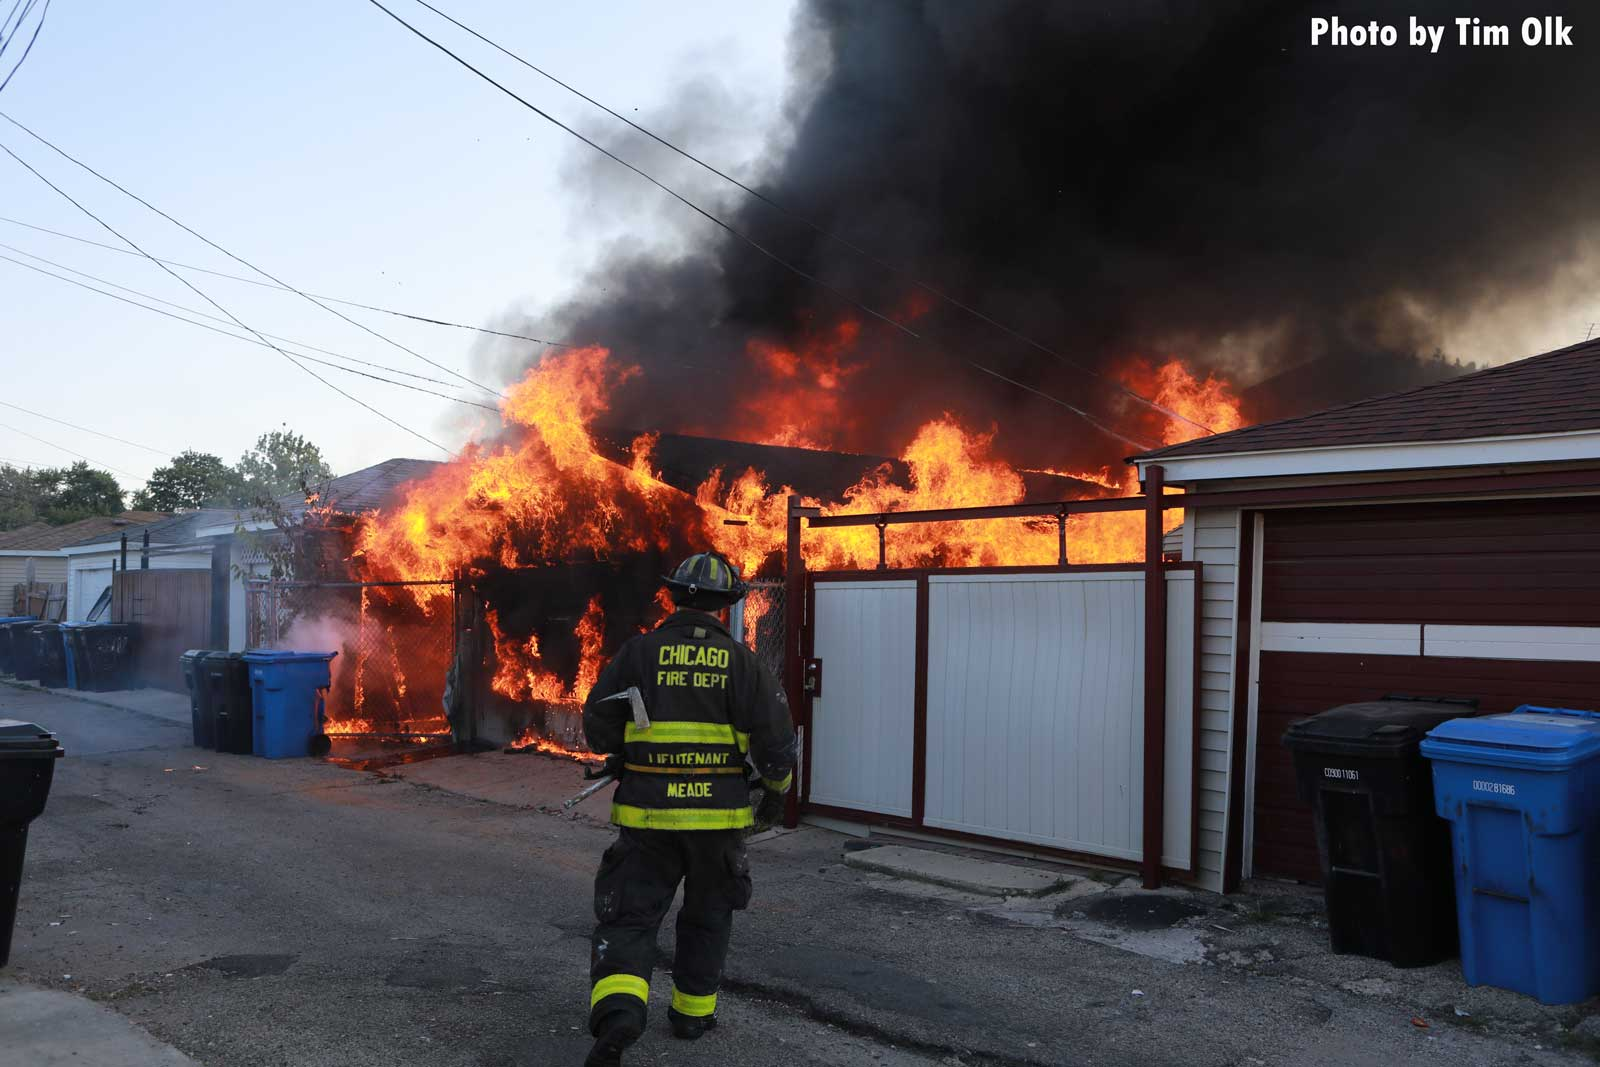 Massive flames rage from the garage with a Chicago firefighter